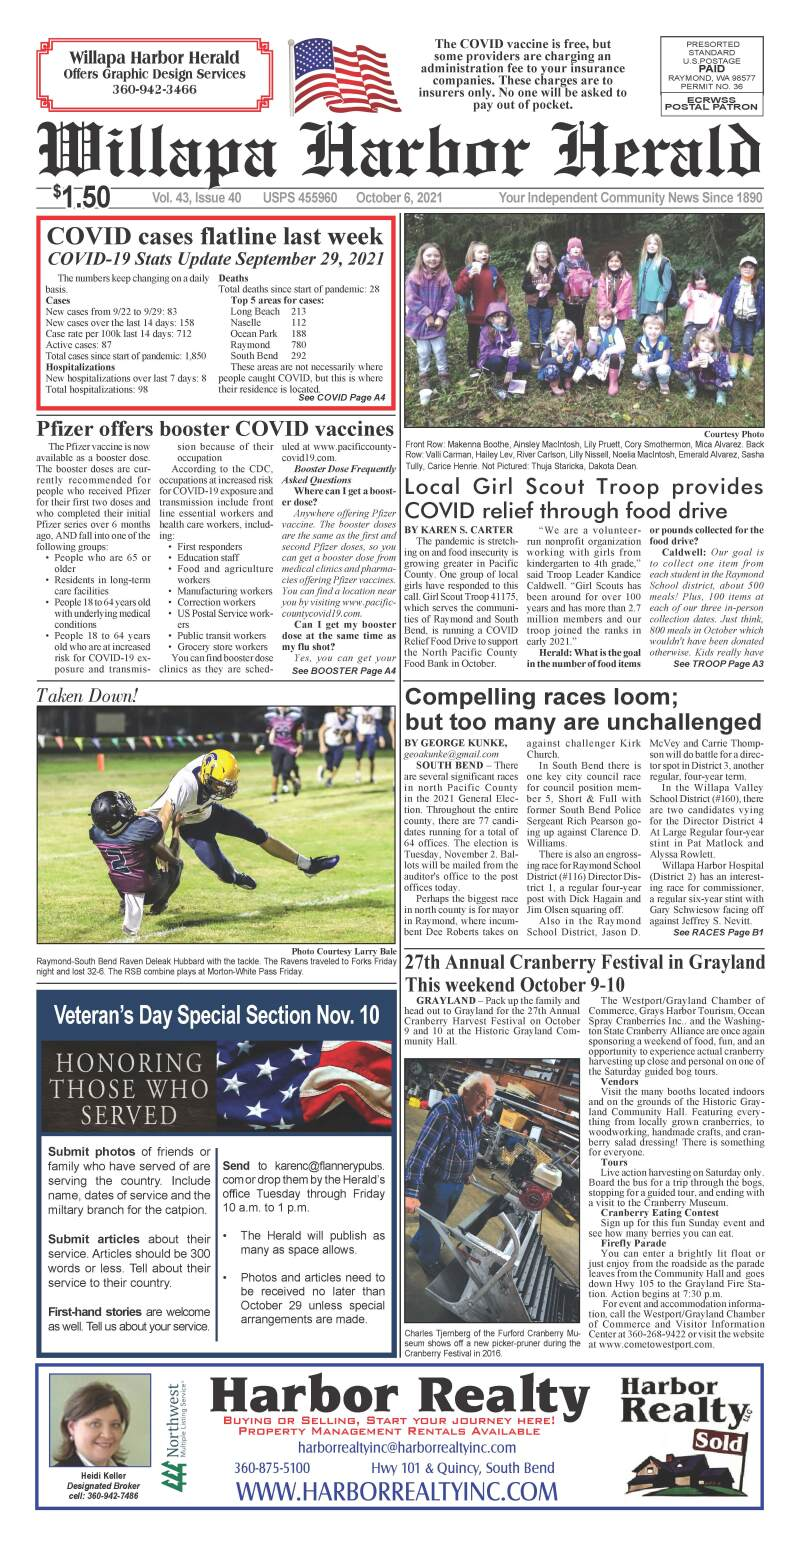 October 6, 2021 Willapa Harbor Herald and Pacific County Press